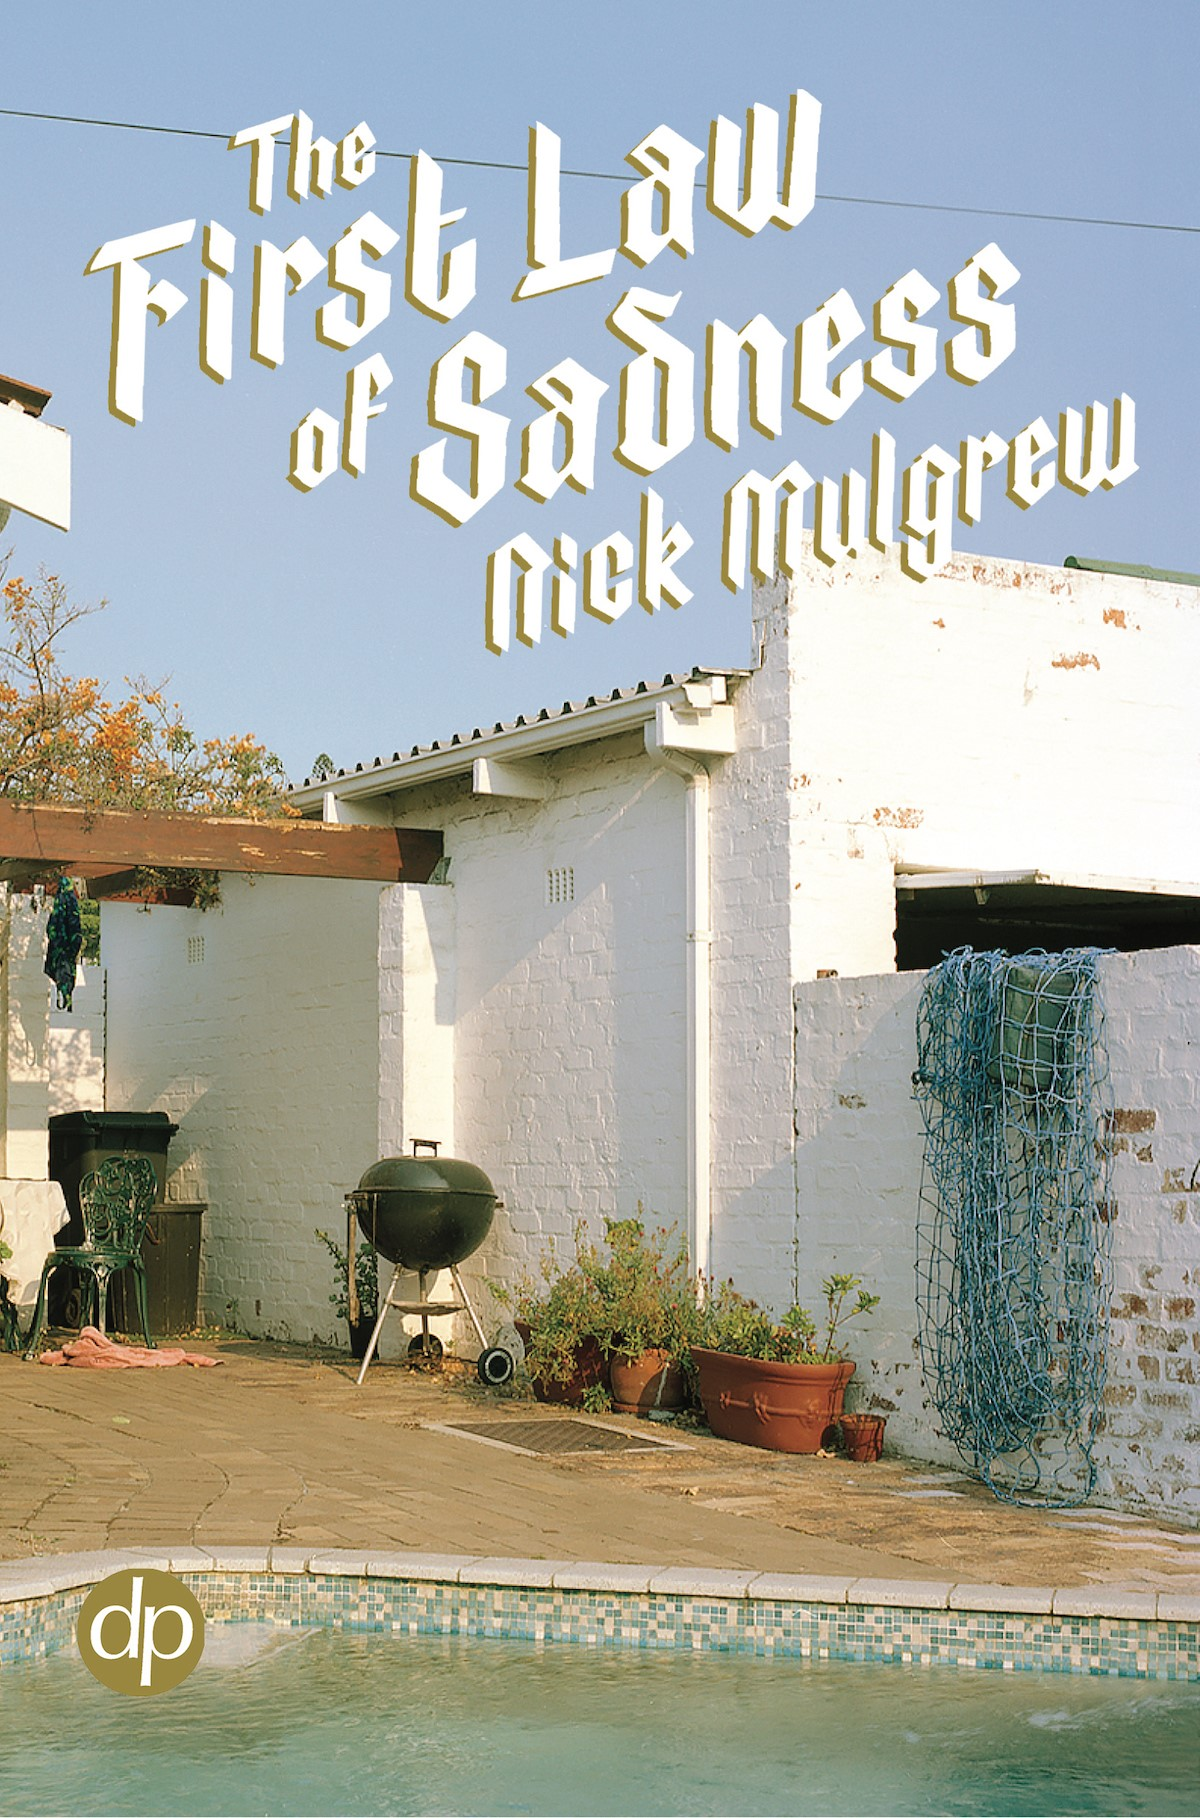 The First Law of Sadness - Nick Mulgrew